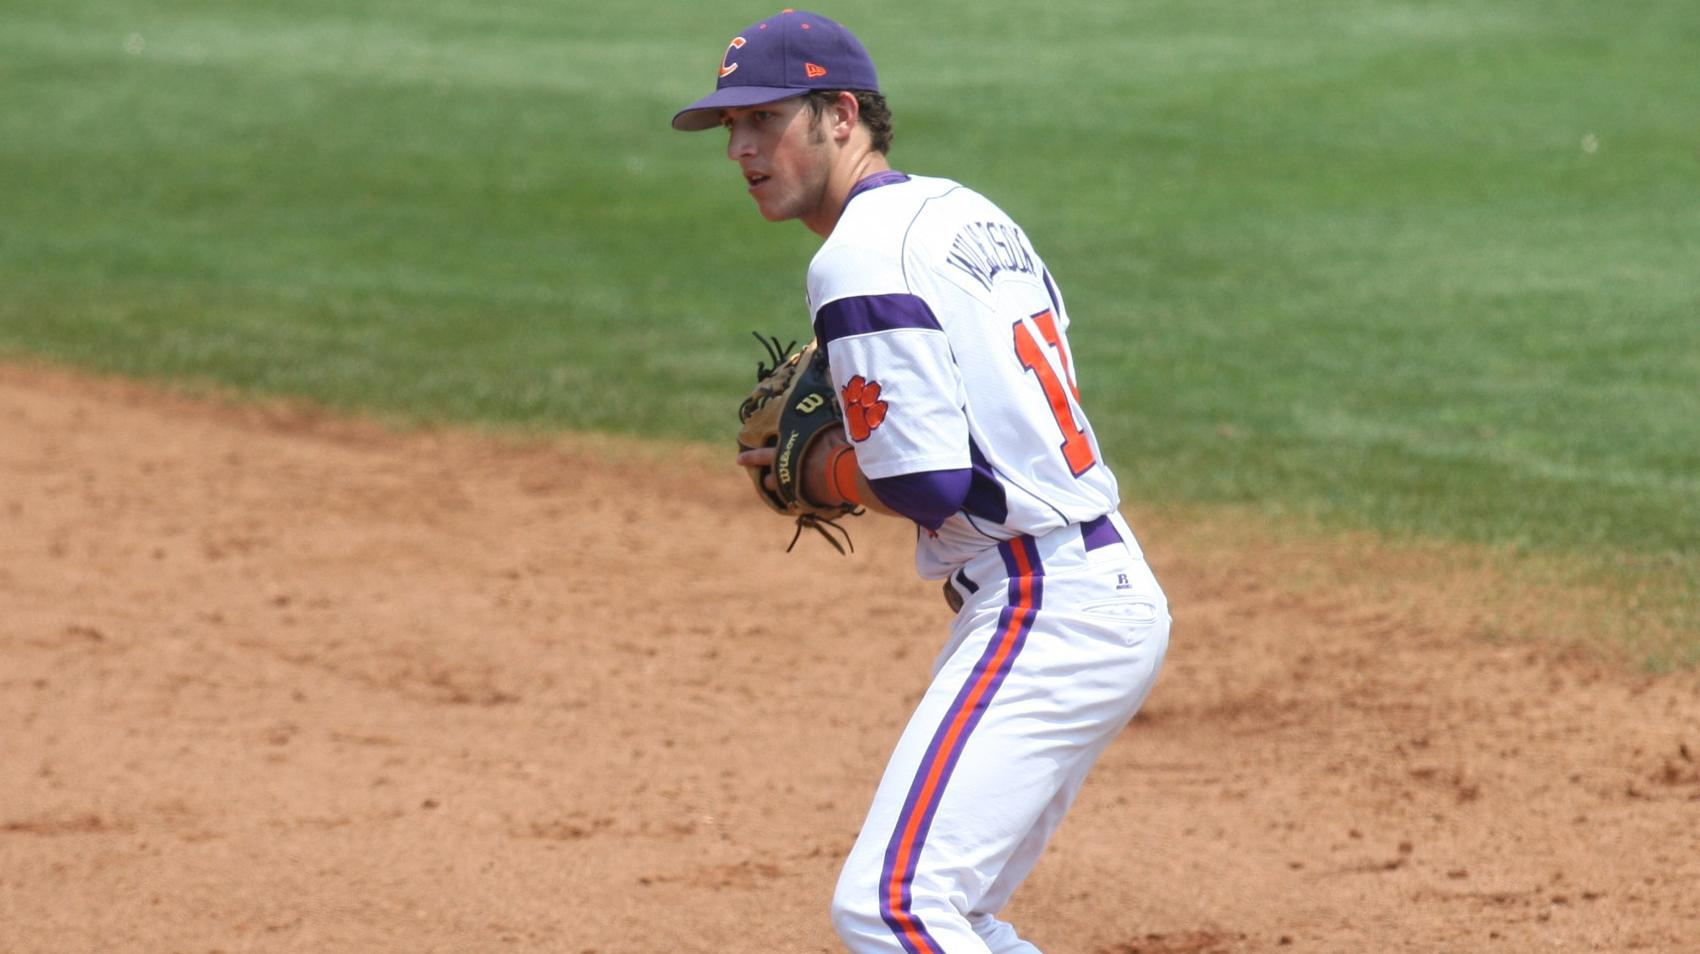 Wilkerson Tabbed With Preseason Third-Team All-America Honors By Collegiate Baseball